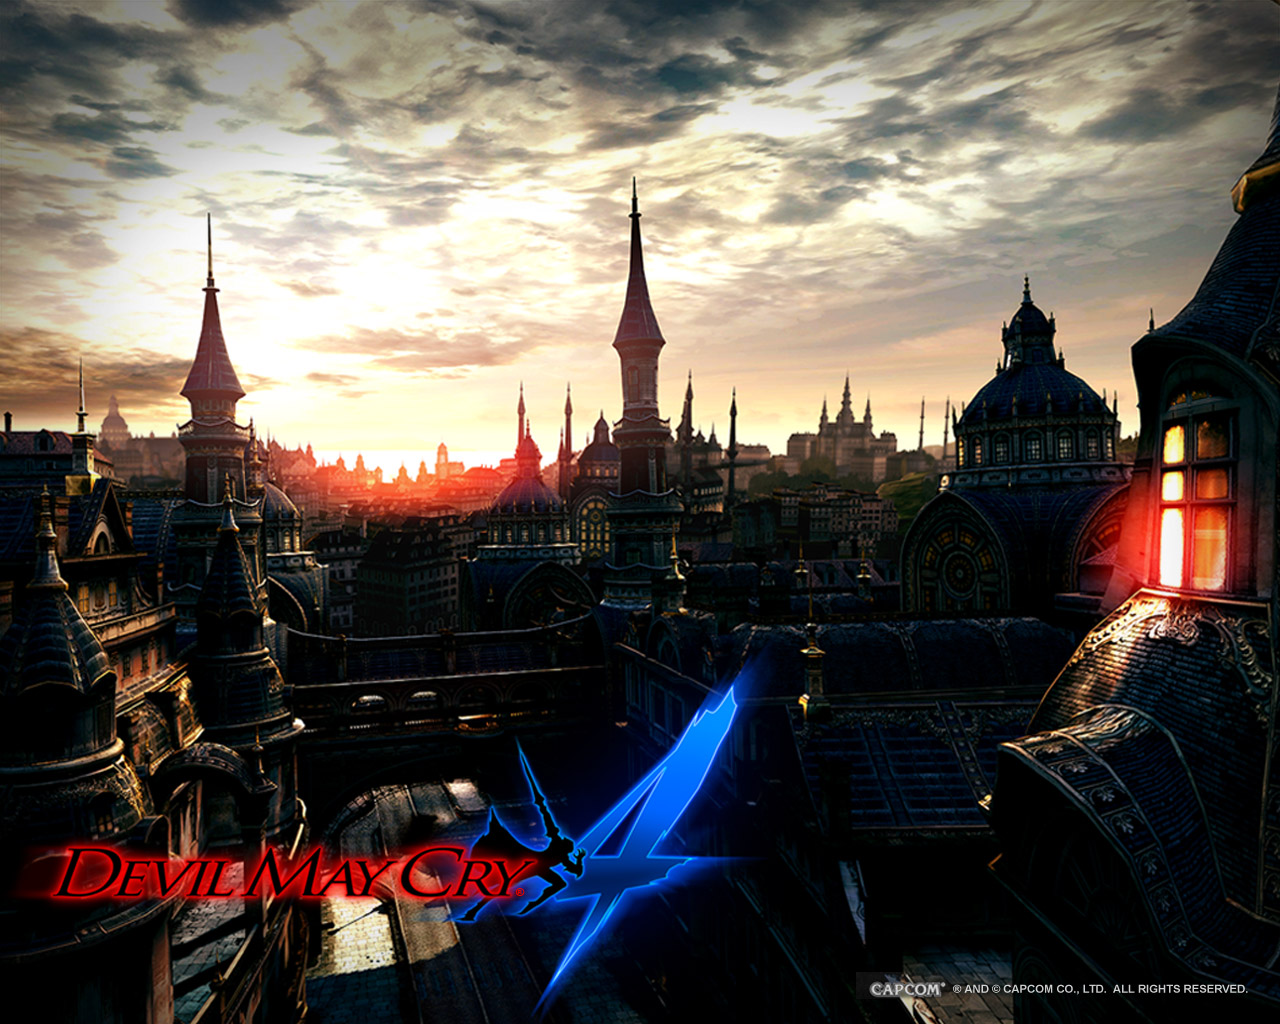 http://images1.wikia.nocookie.net/devilmaycry/images/0/06/Fortuna_04.jpg